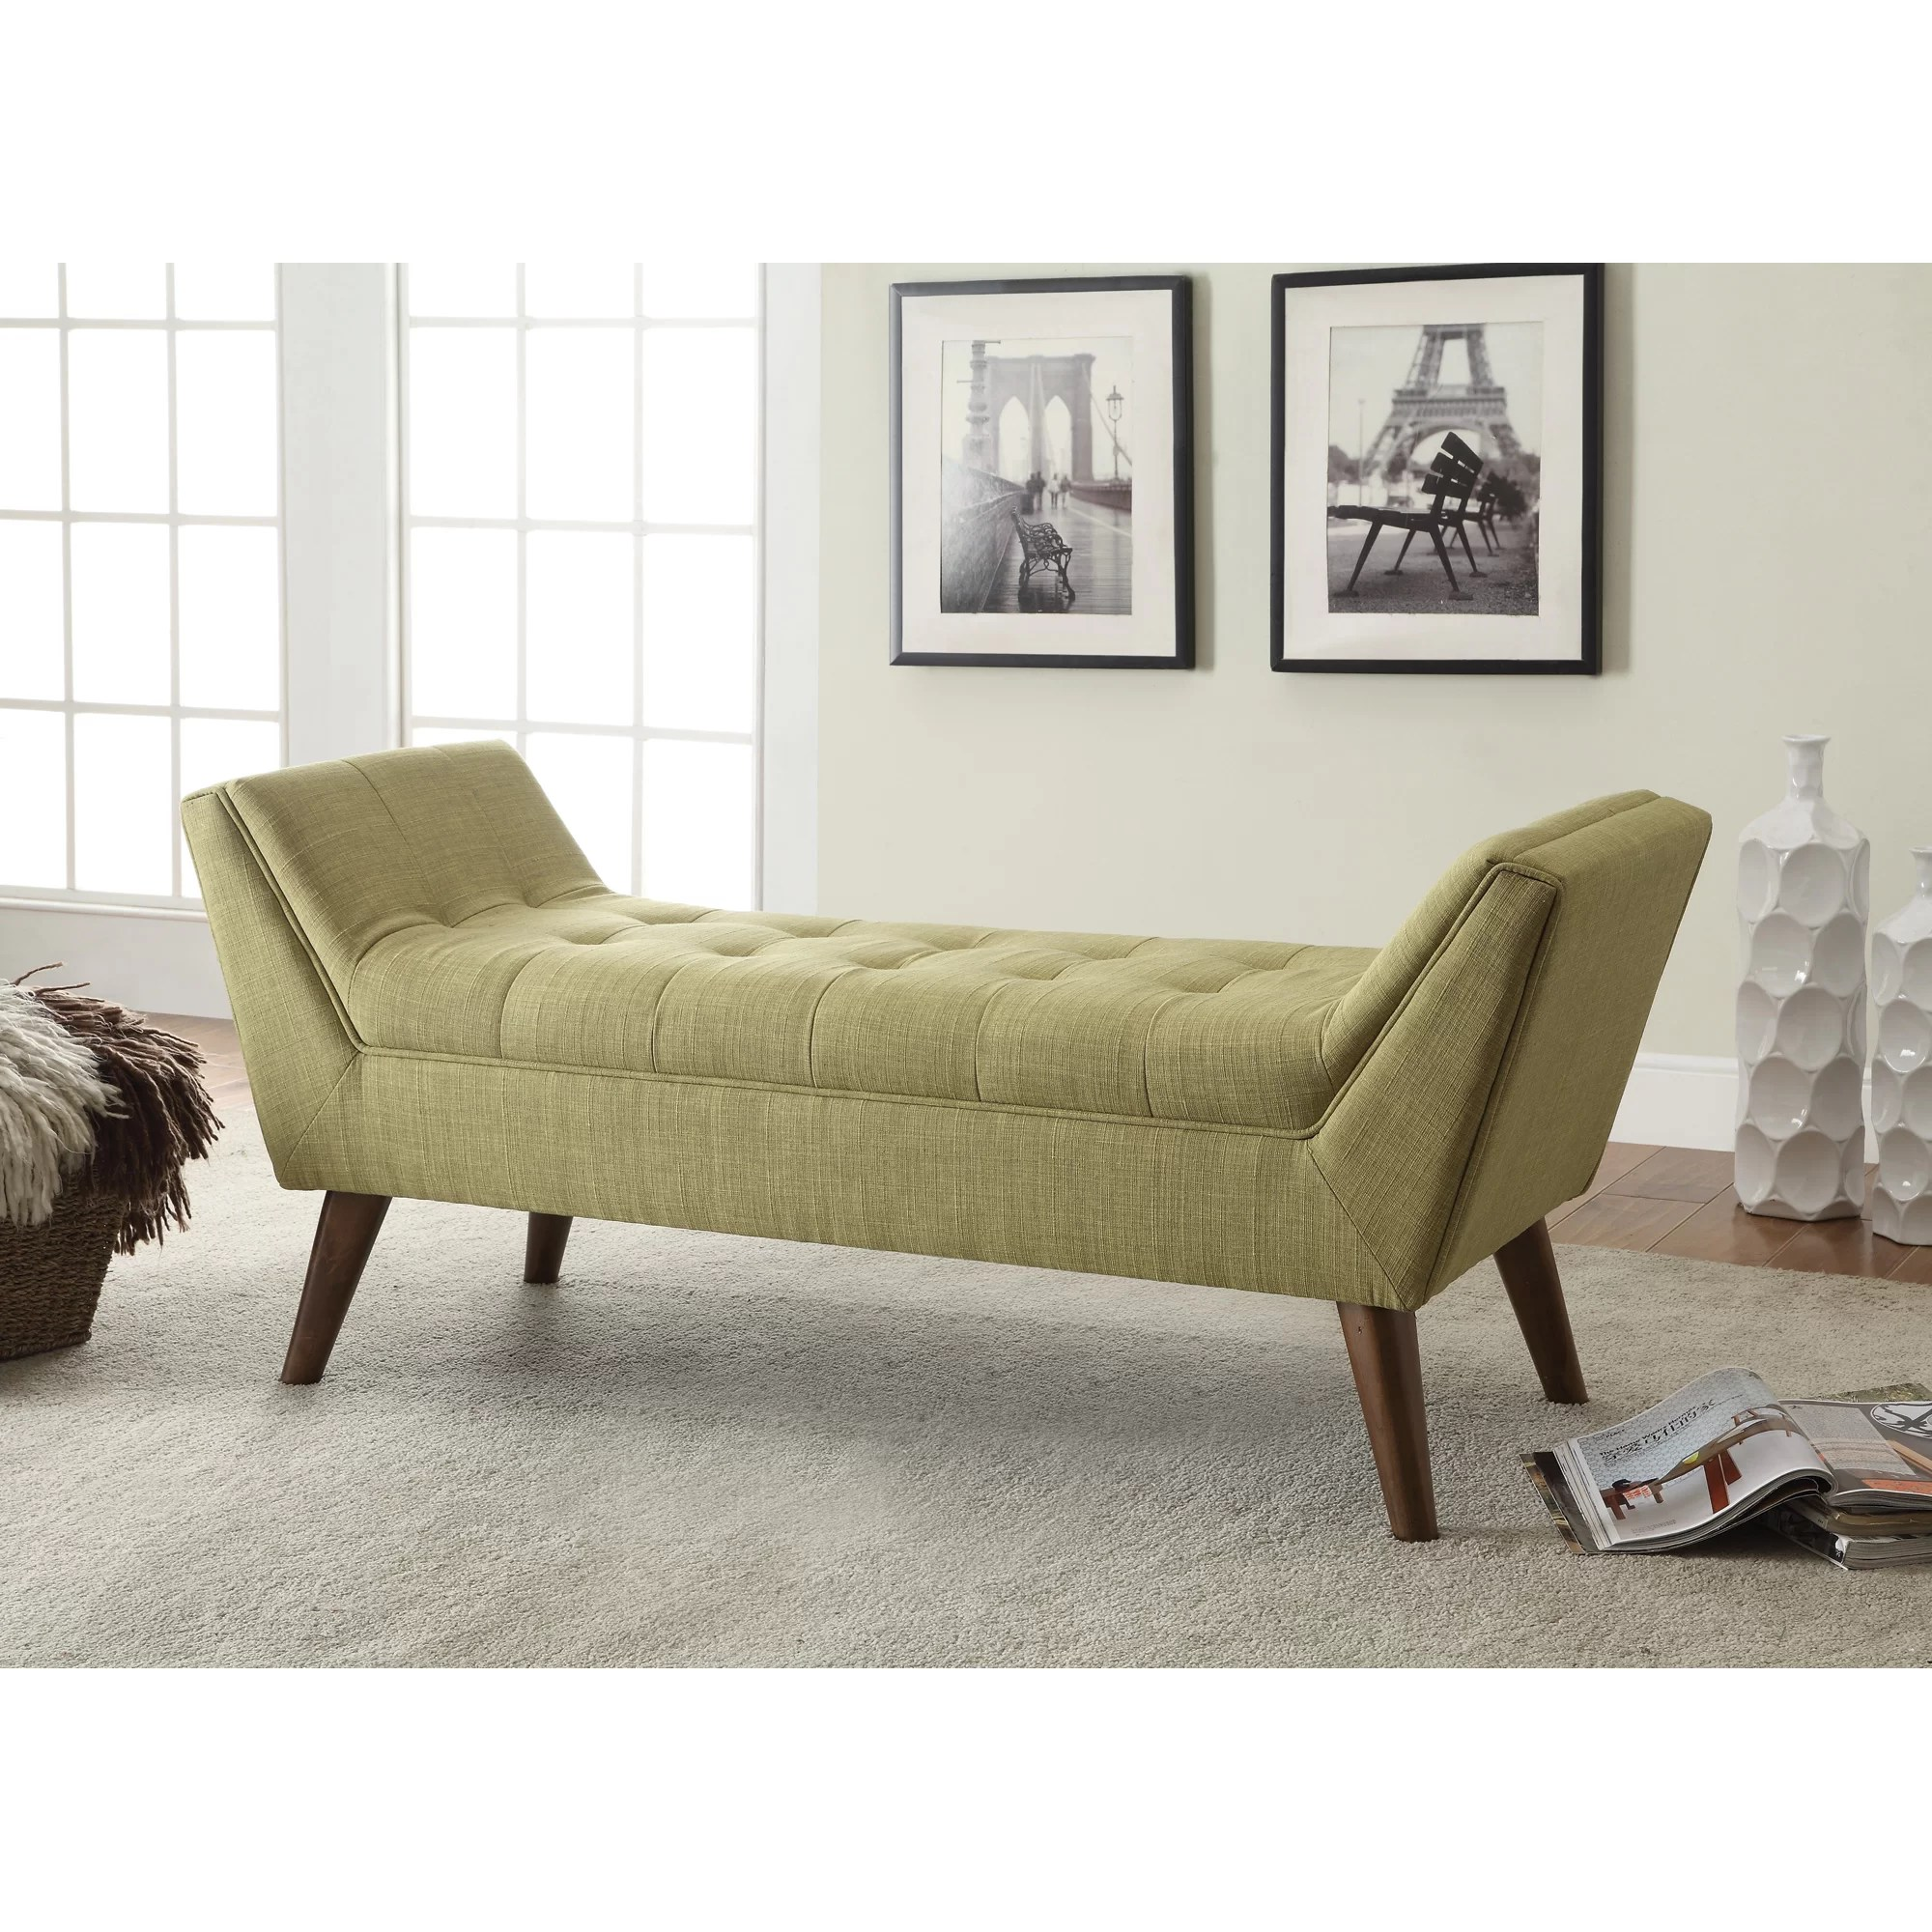 Bedroom Bench Pictures Langley Street Serena Upholstered Bedroom Bench And Reviews